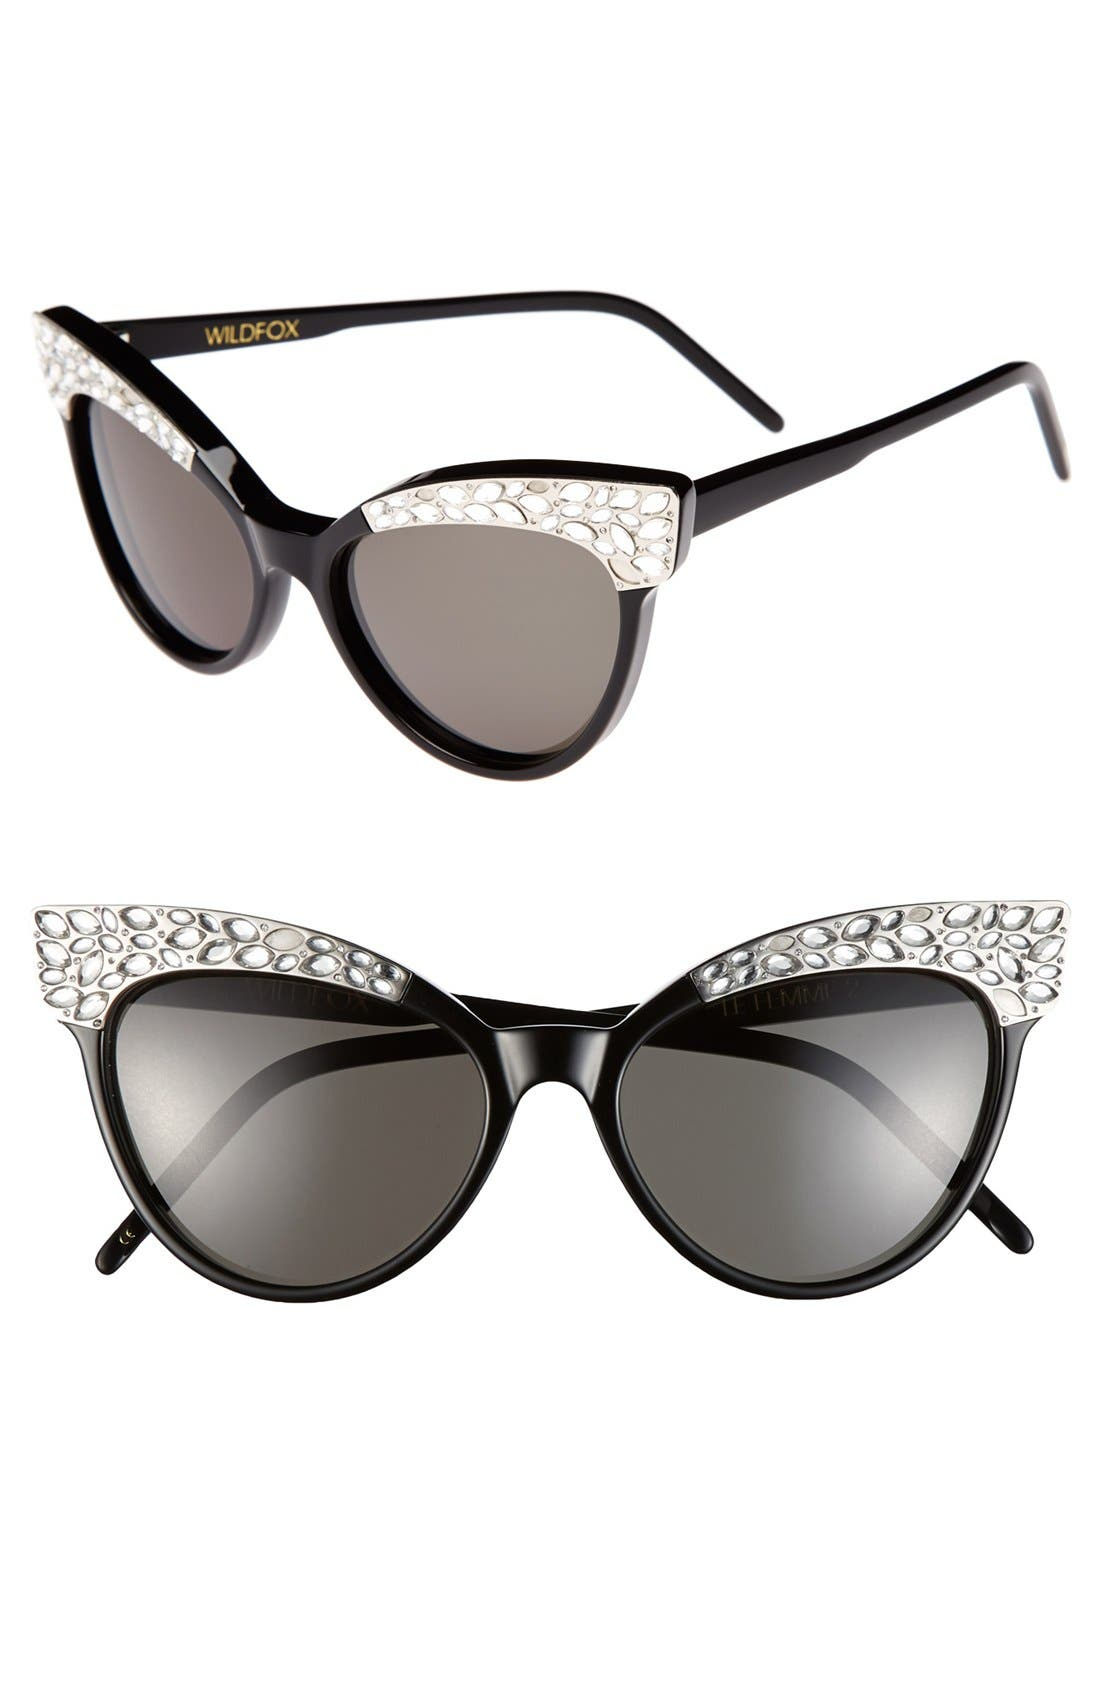 Main Image - Wildfox 'Le Femme 2' 55mm Cat Eye Sunglasses